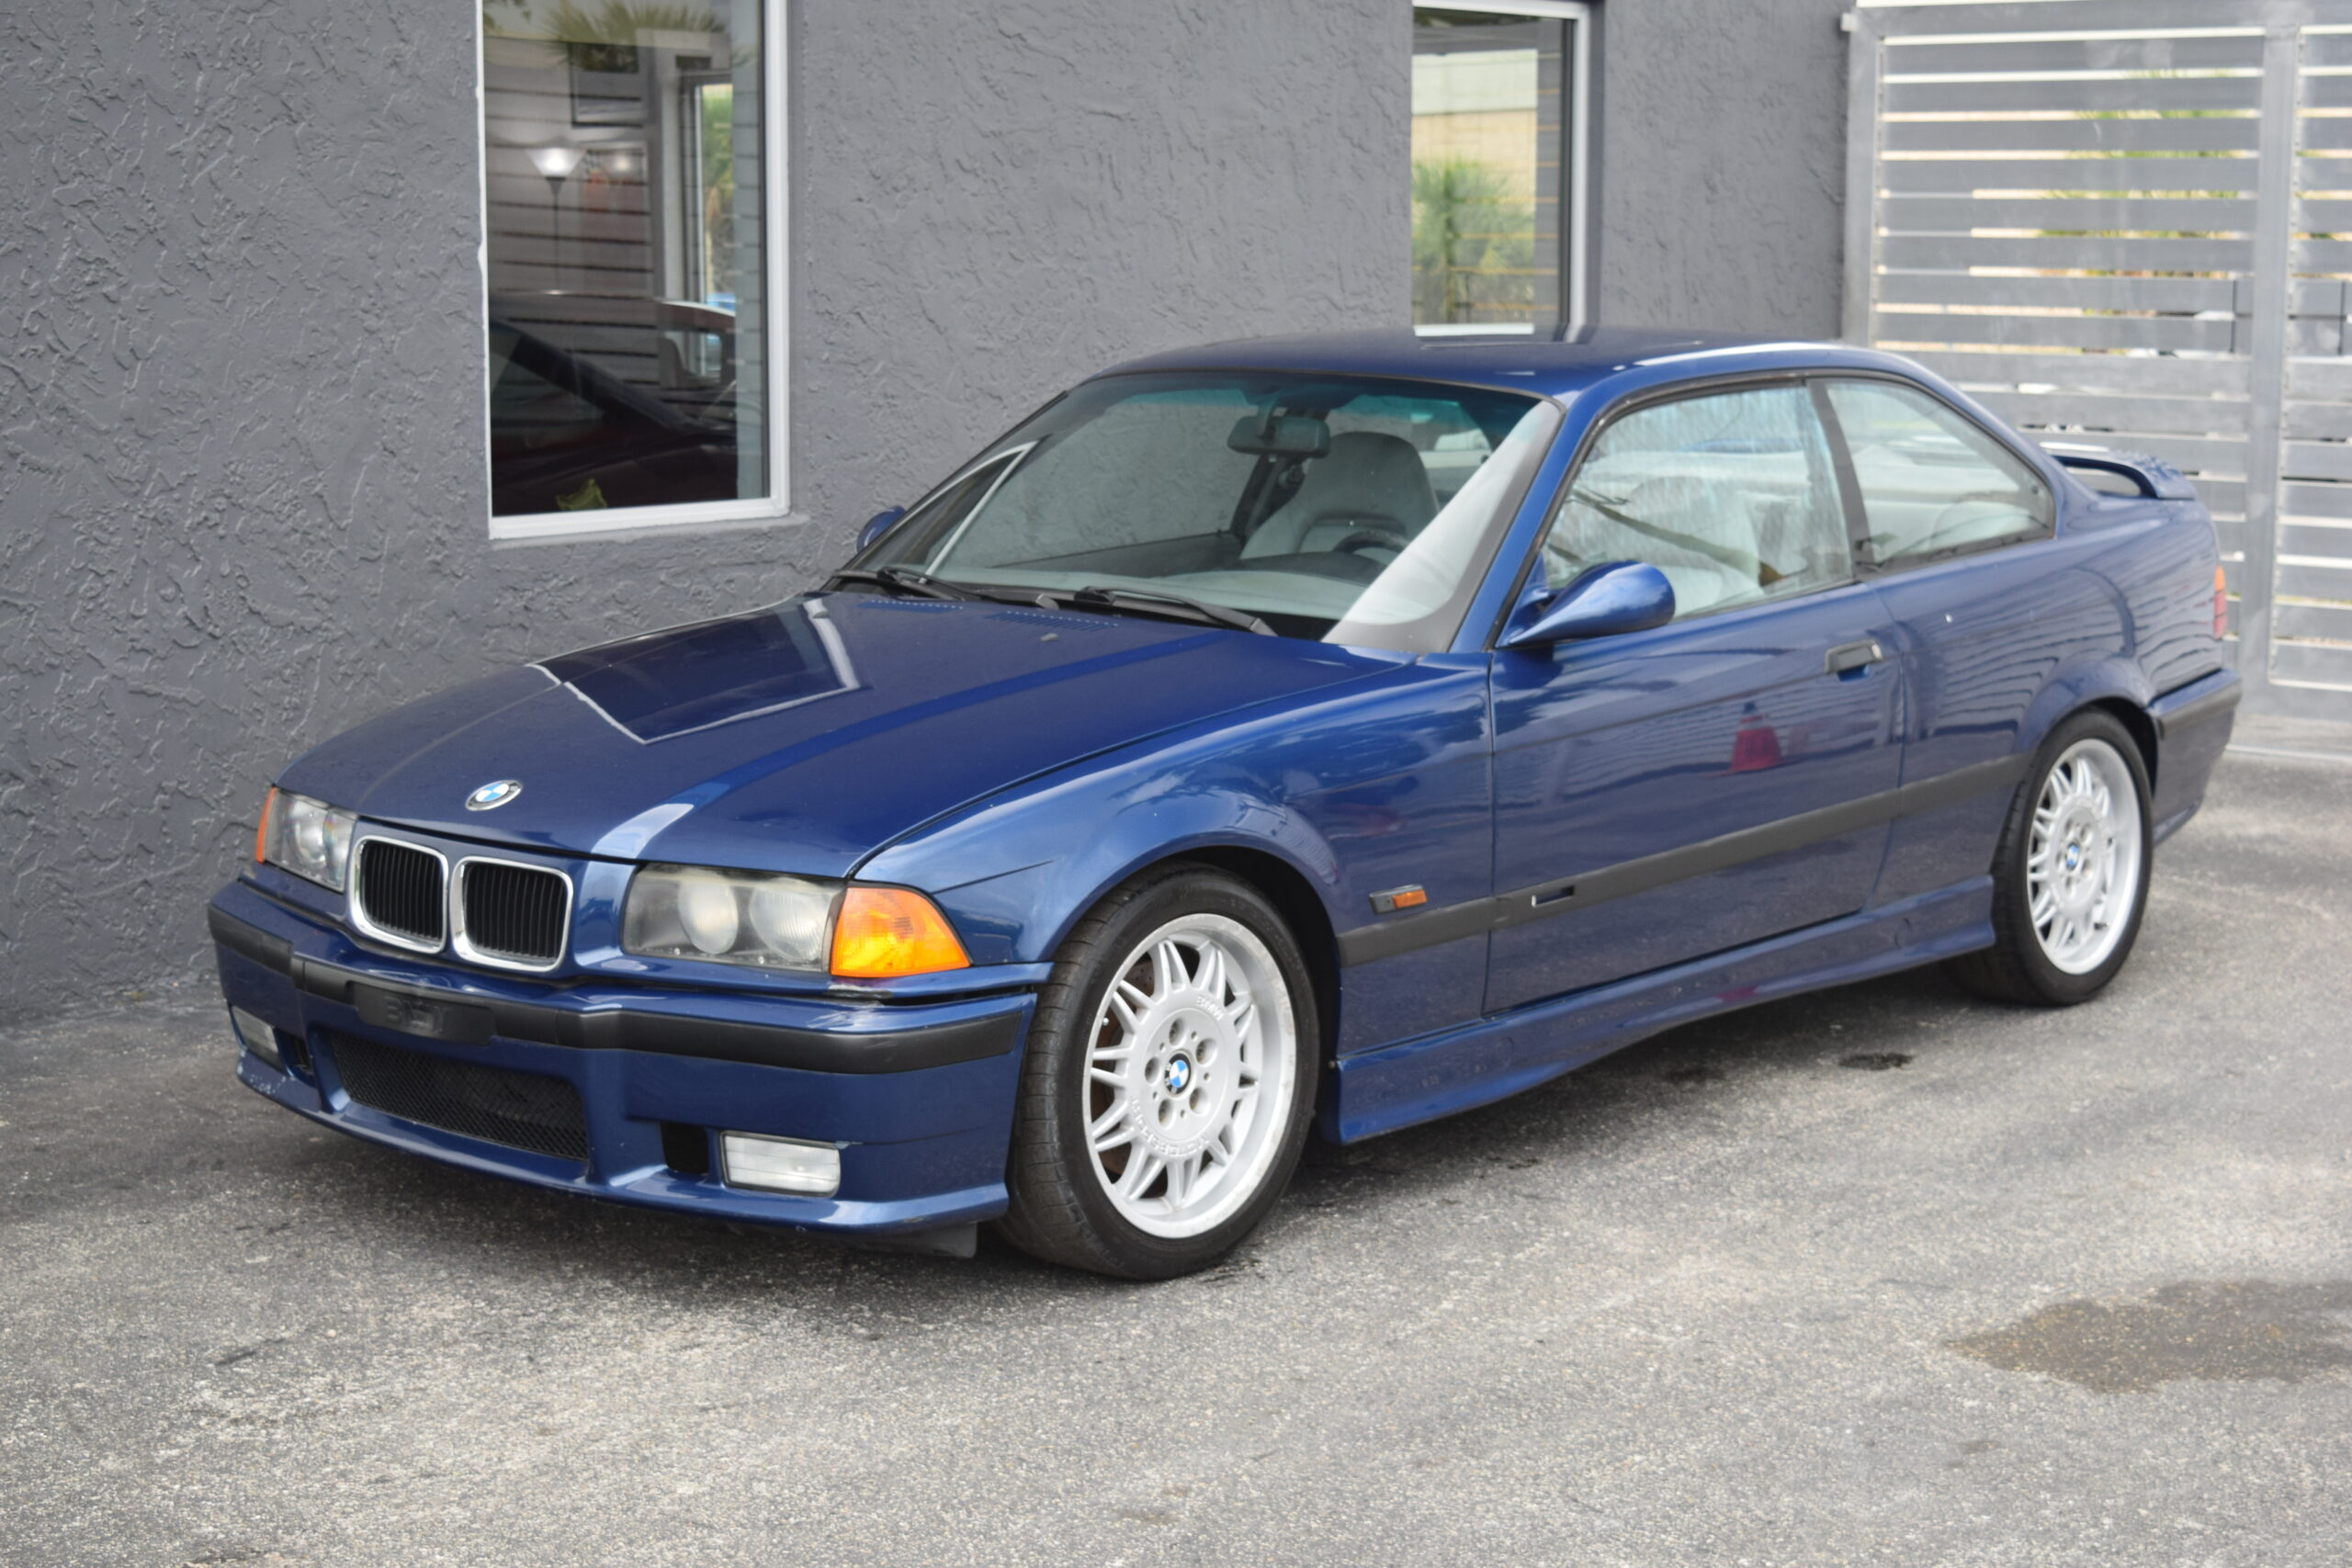 1995 BMW M3 COUPE AVUS BLUE, ONE OWNER, CLEAN CARFAX, UNMODIFIED RUNNING PROJECT CAR